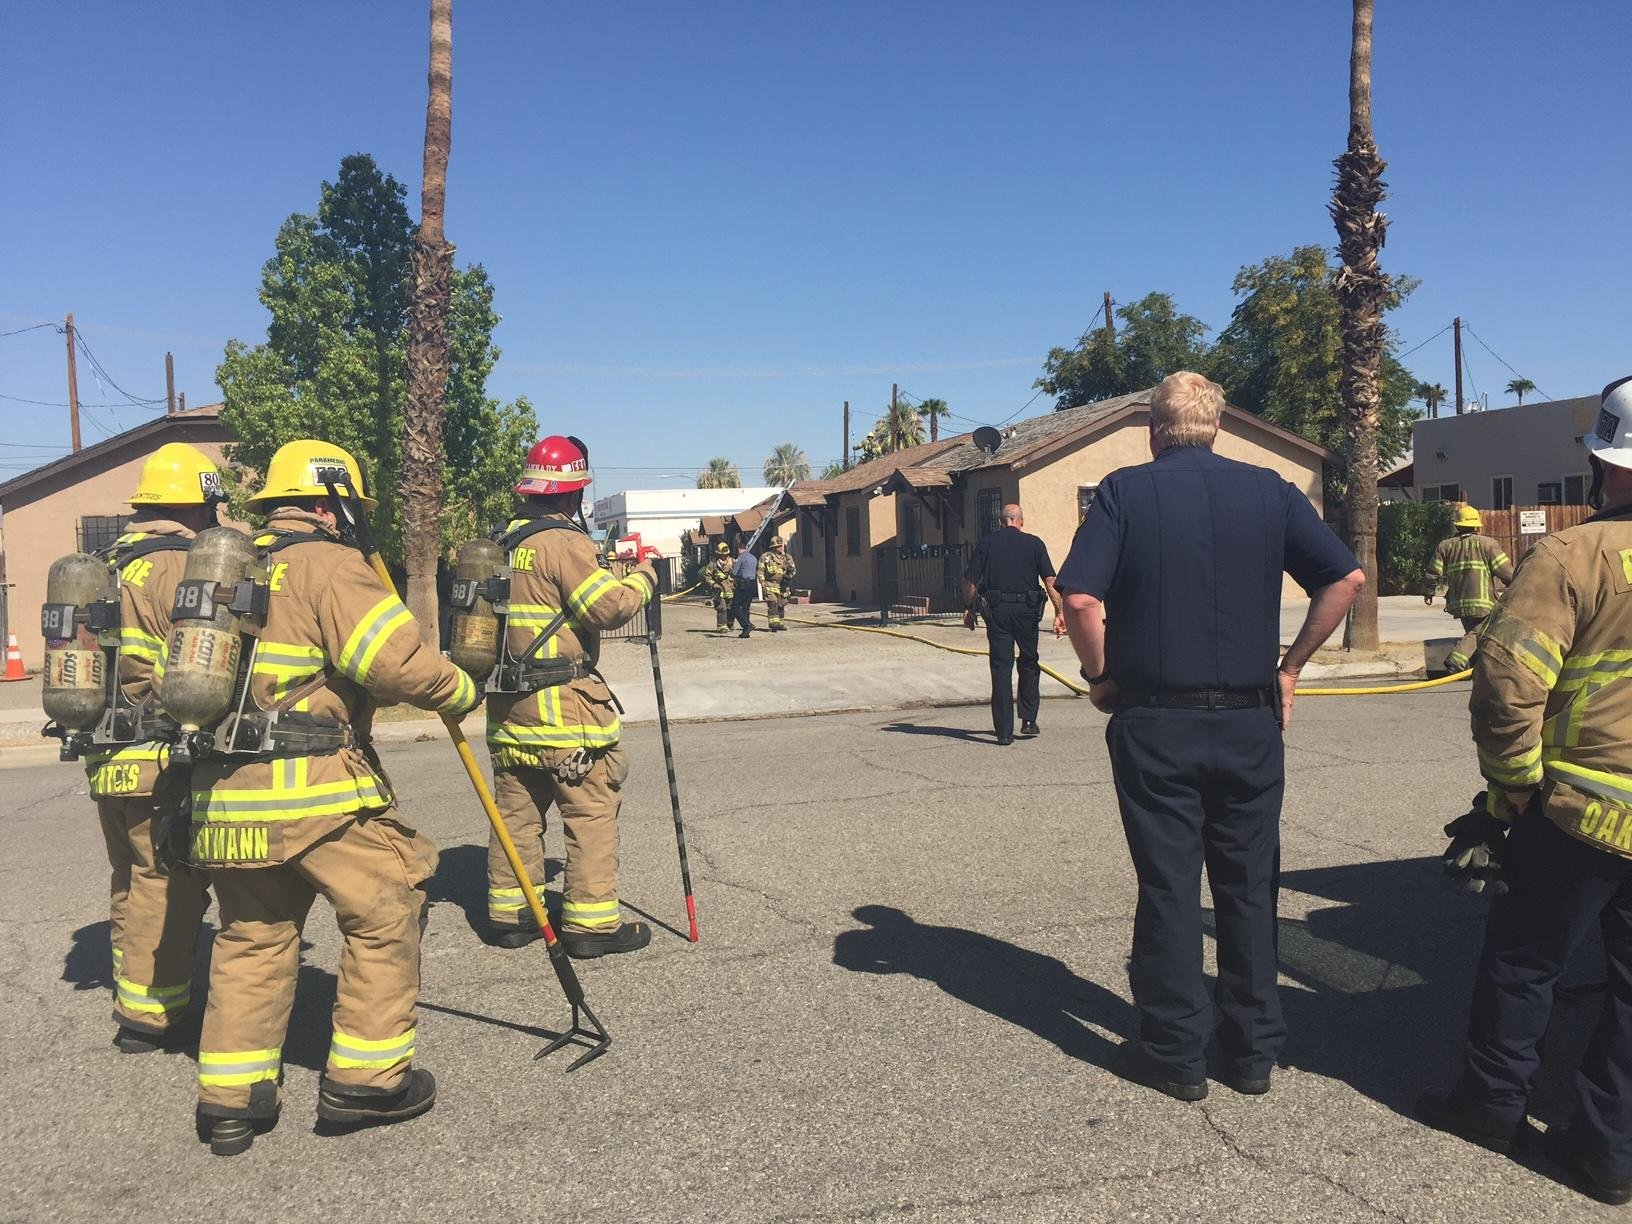 David Lee Ellis, 61 died from injuries suffered in an explosion and fire that occurred at his residence in the city of Indio.